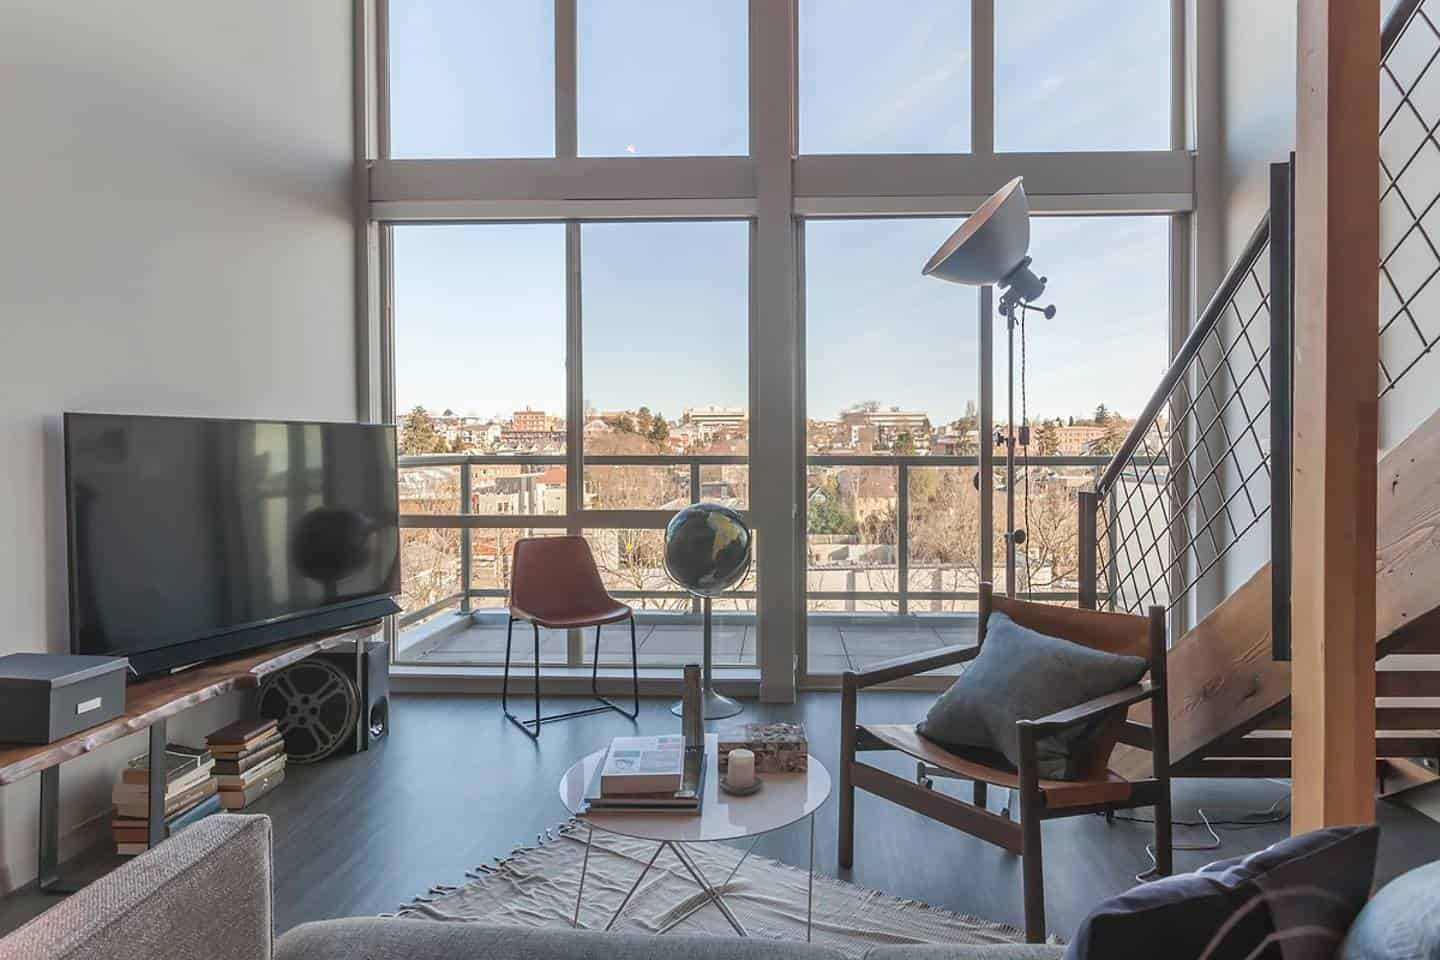 Airbnb Seattle at Capitol Hill